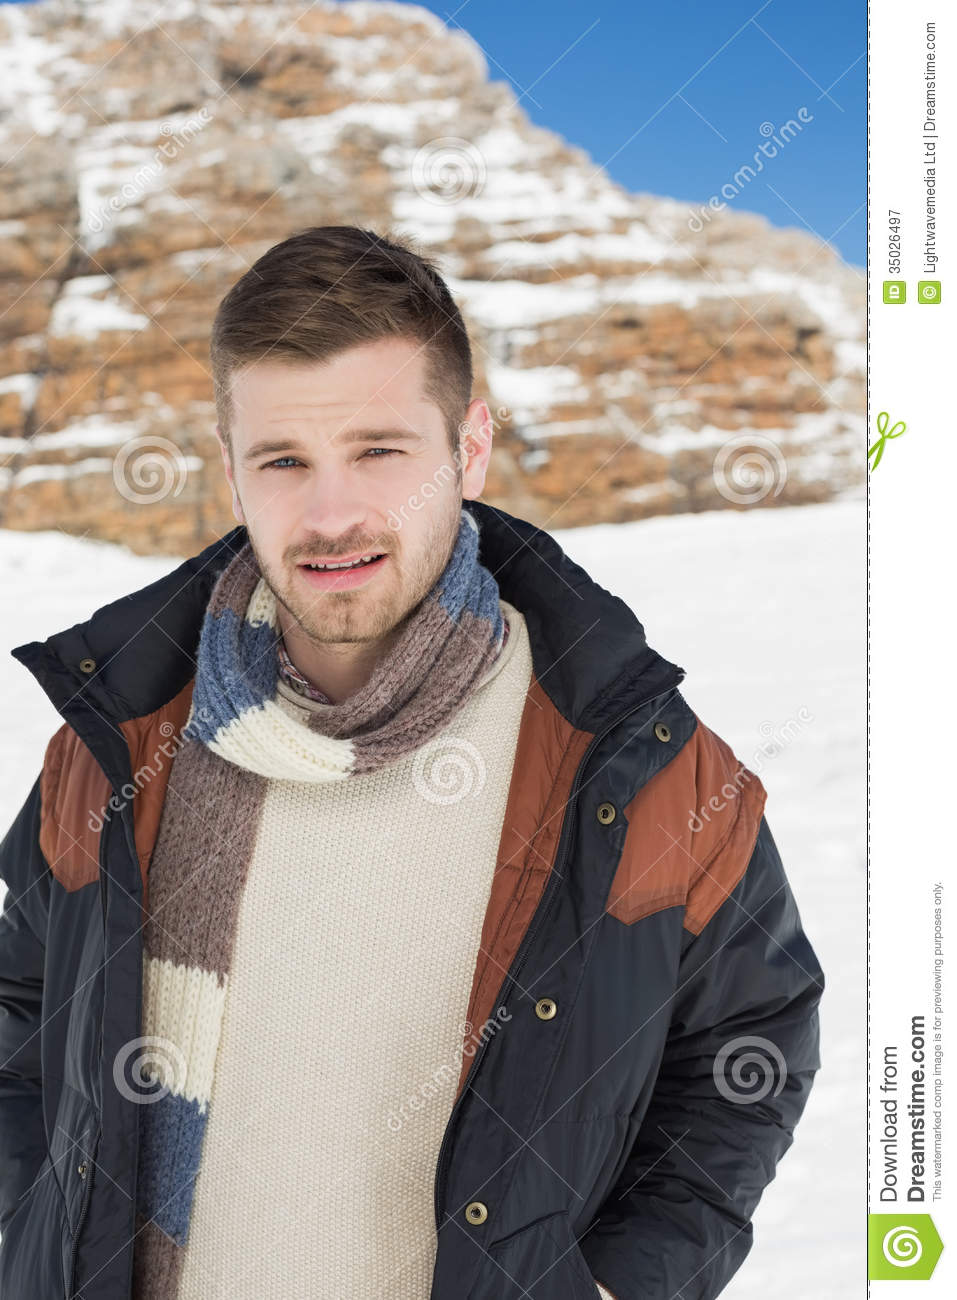 Man In Warm Clothing Standing On Snow Covered Landscape